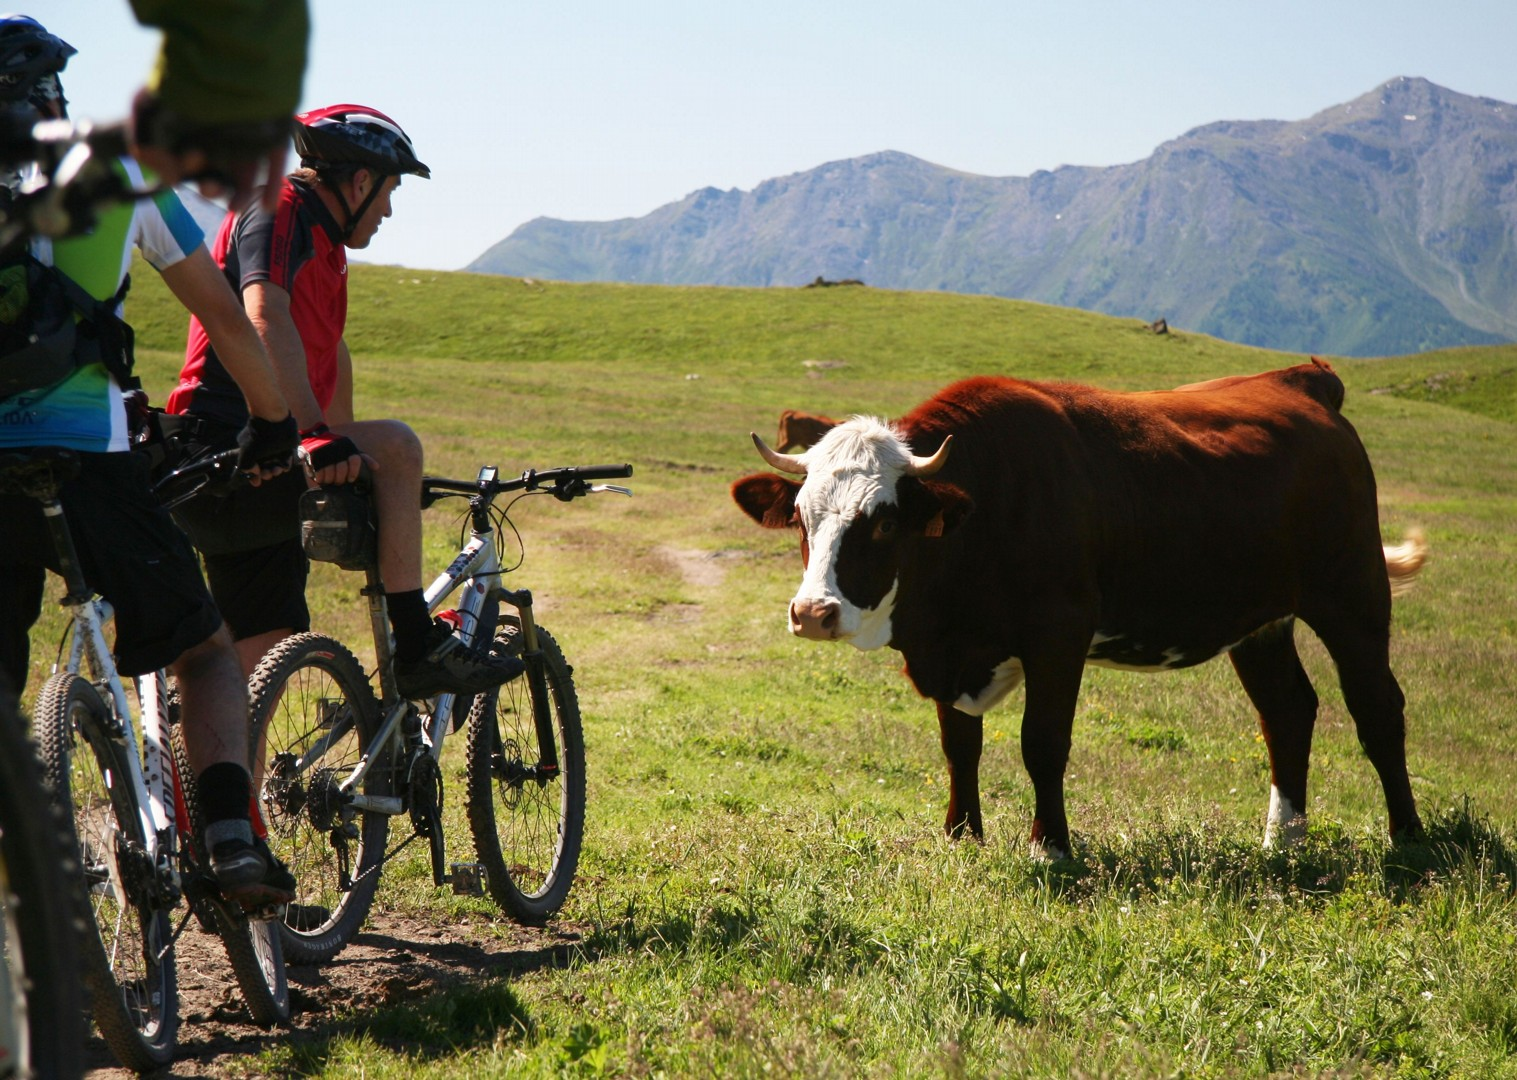 expert-guides-mountain-bike-holiday-in-the-alps-alpine-adventure.JPG - Italy and France - Alpine Adventure - Guided Mountain Bike Holiday - Mountain Biking